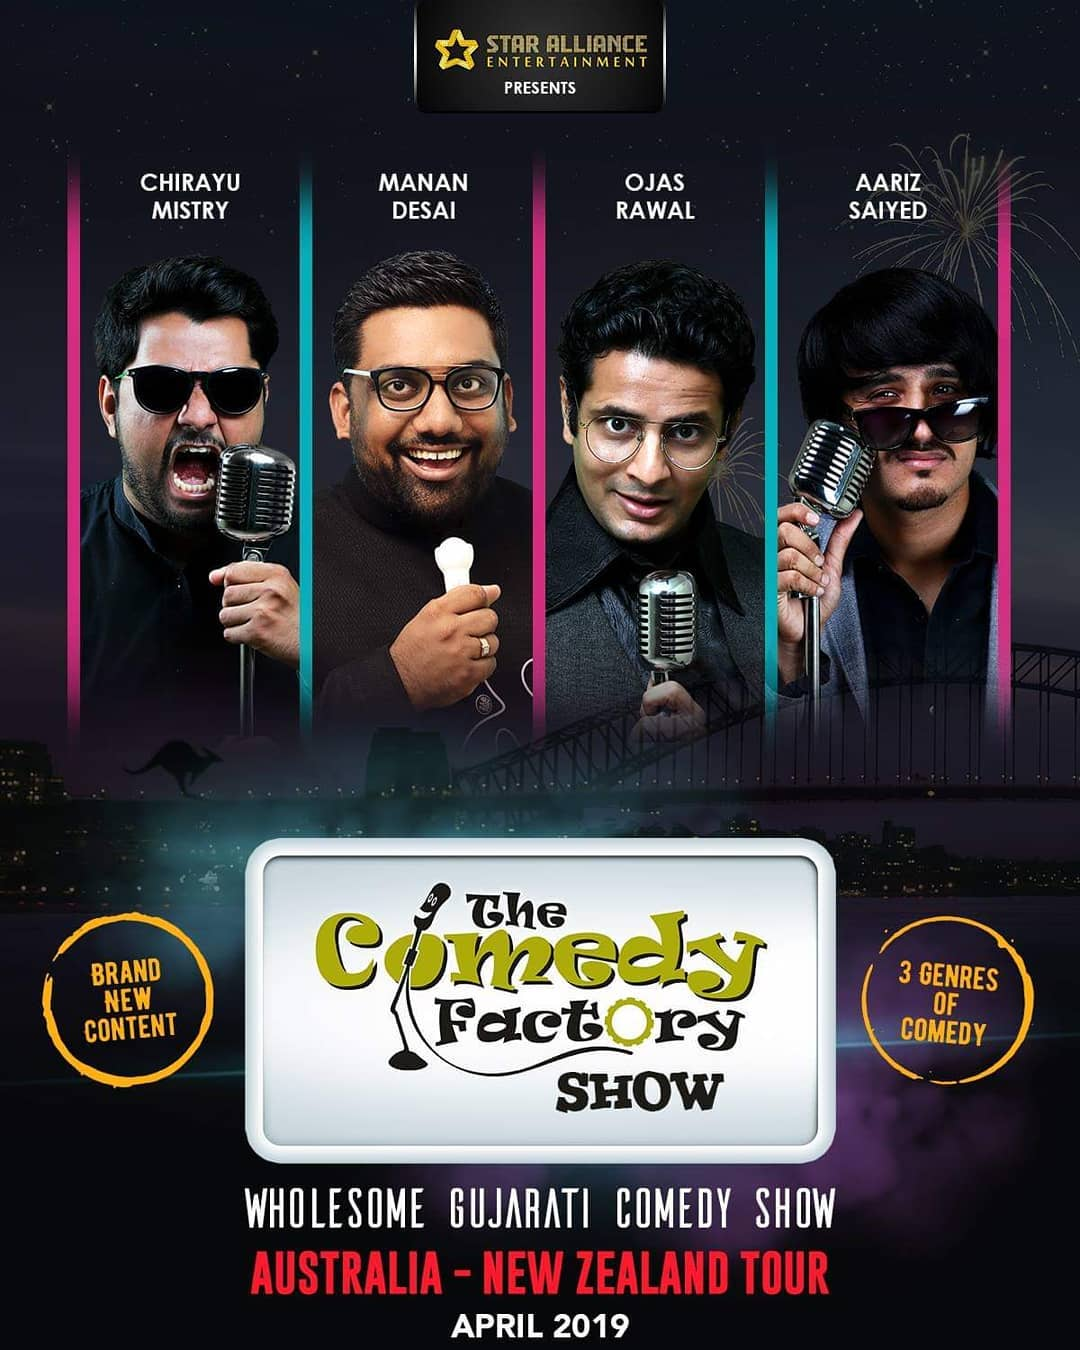 If you want to promote or sponsor or organize or book our show for your city during our Australia or New Zealand then Please get in touch with @bablu21  Happy New Year  #thecomedyfactory #AustraliaTour #NewZealandTour